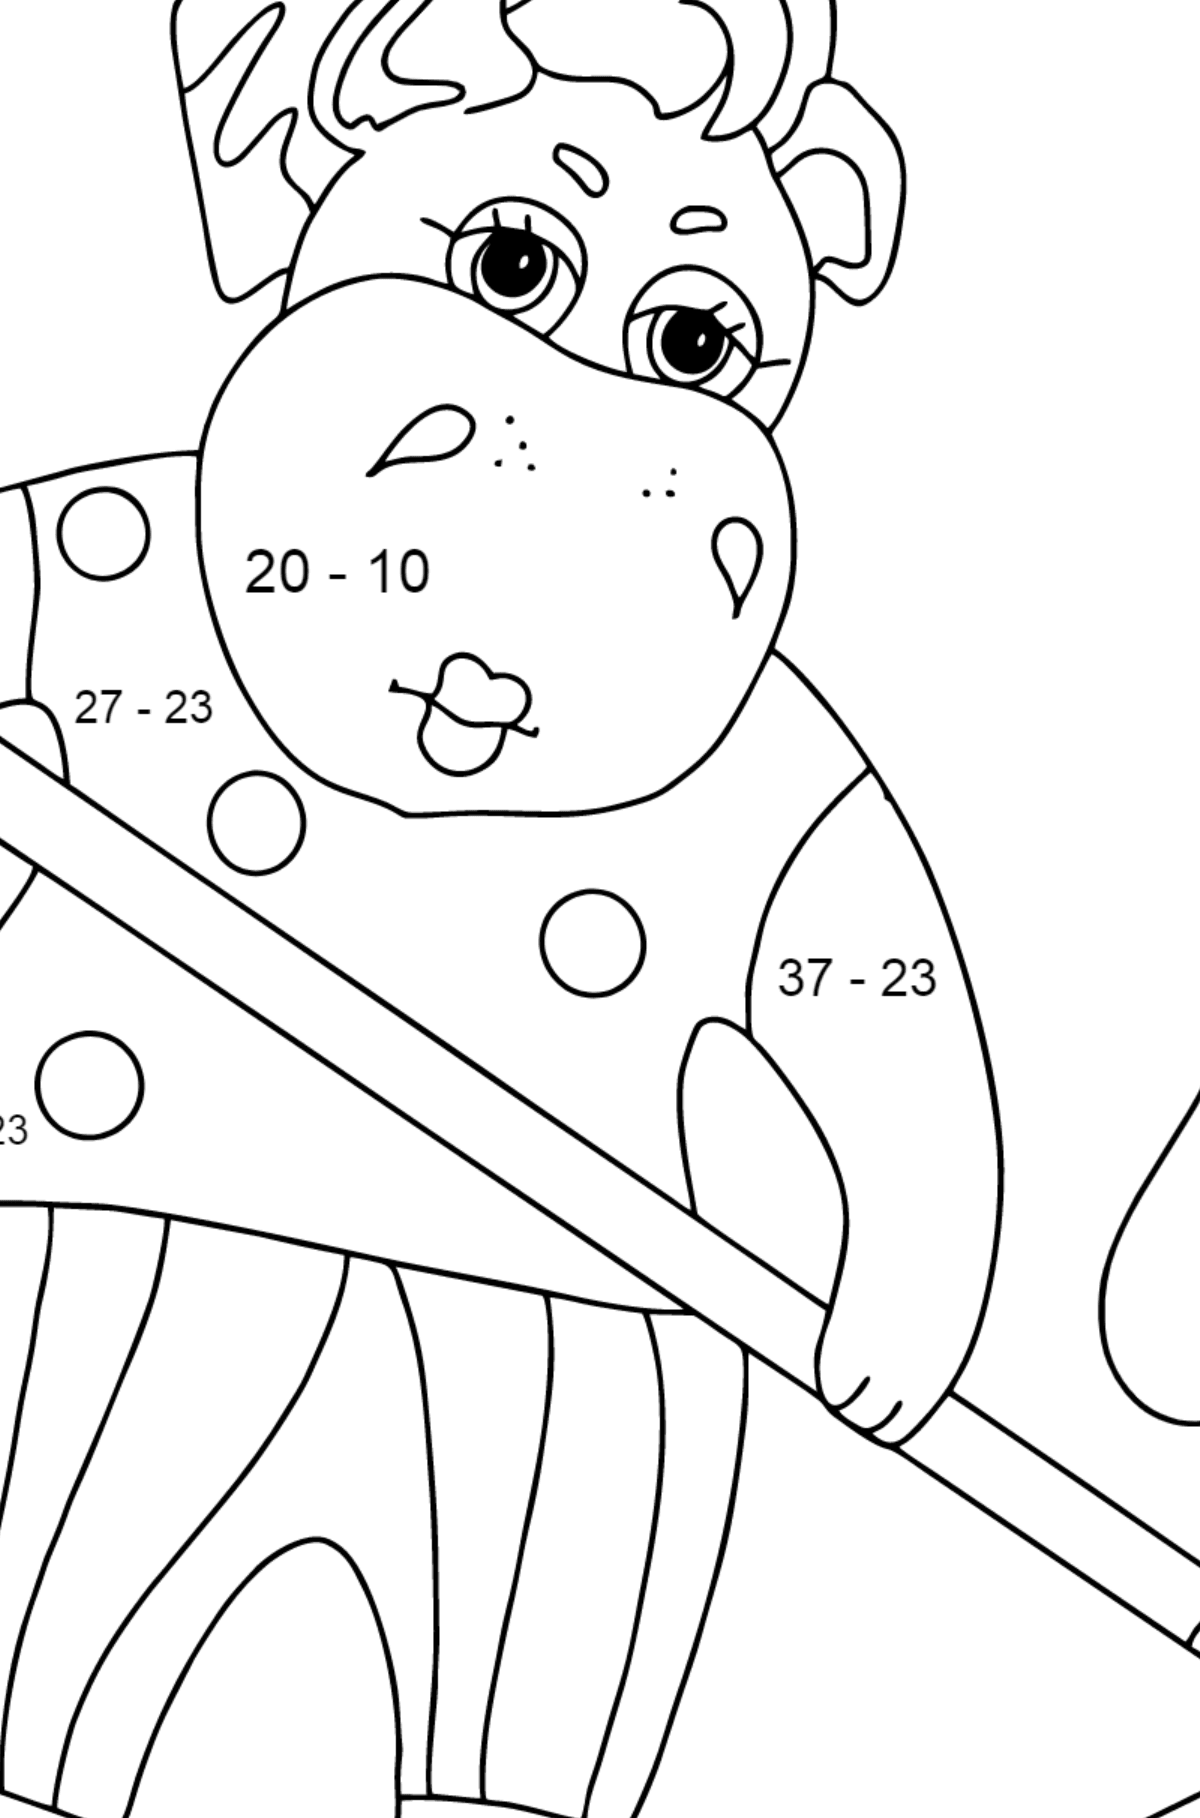 Coloring Page - A Hippo is Collecting Fallen Leaves for Children  - Color by Number Substraction